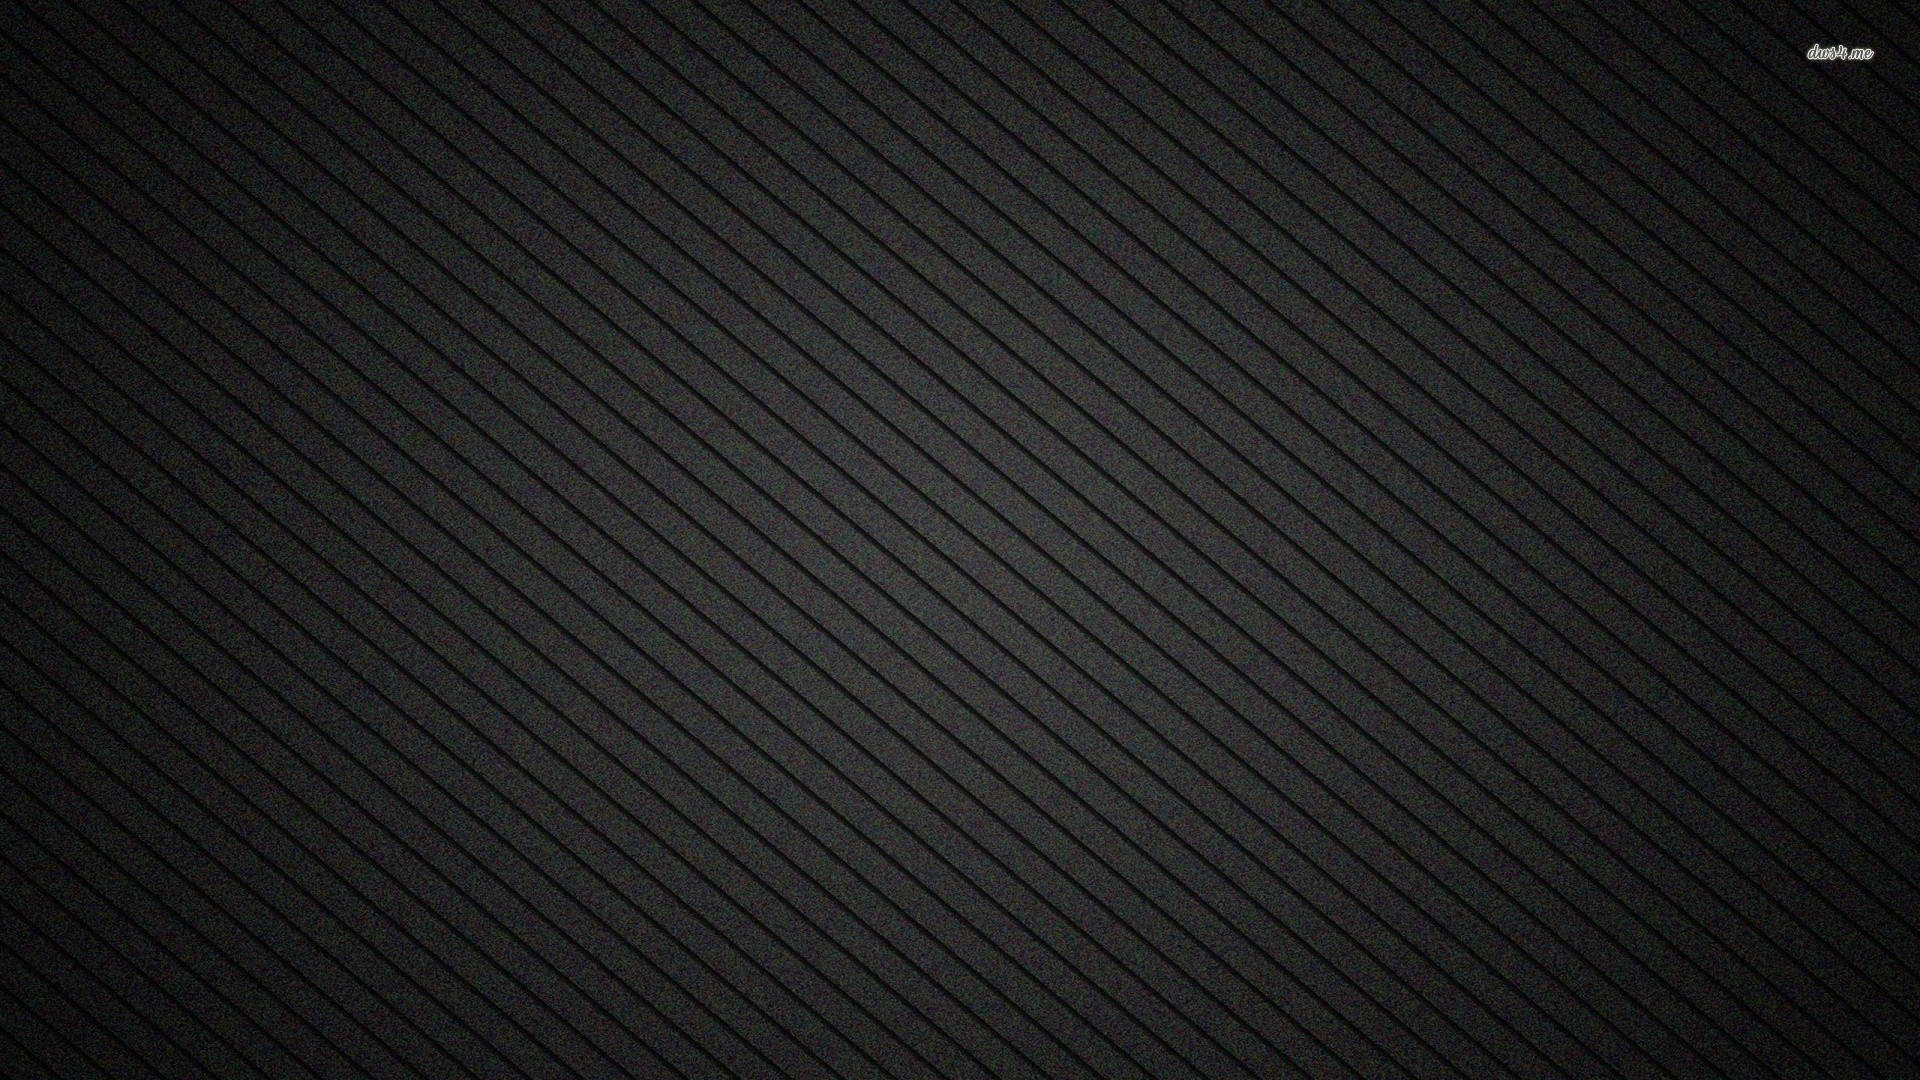 Grey hd wallpapers 67 images - Solid light gray wallpaper ...